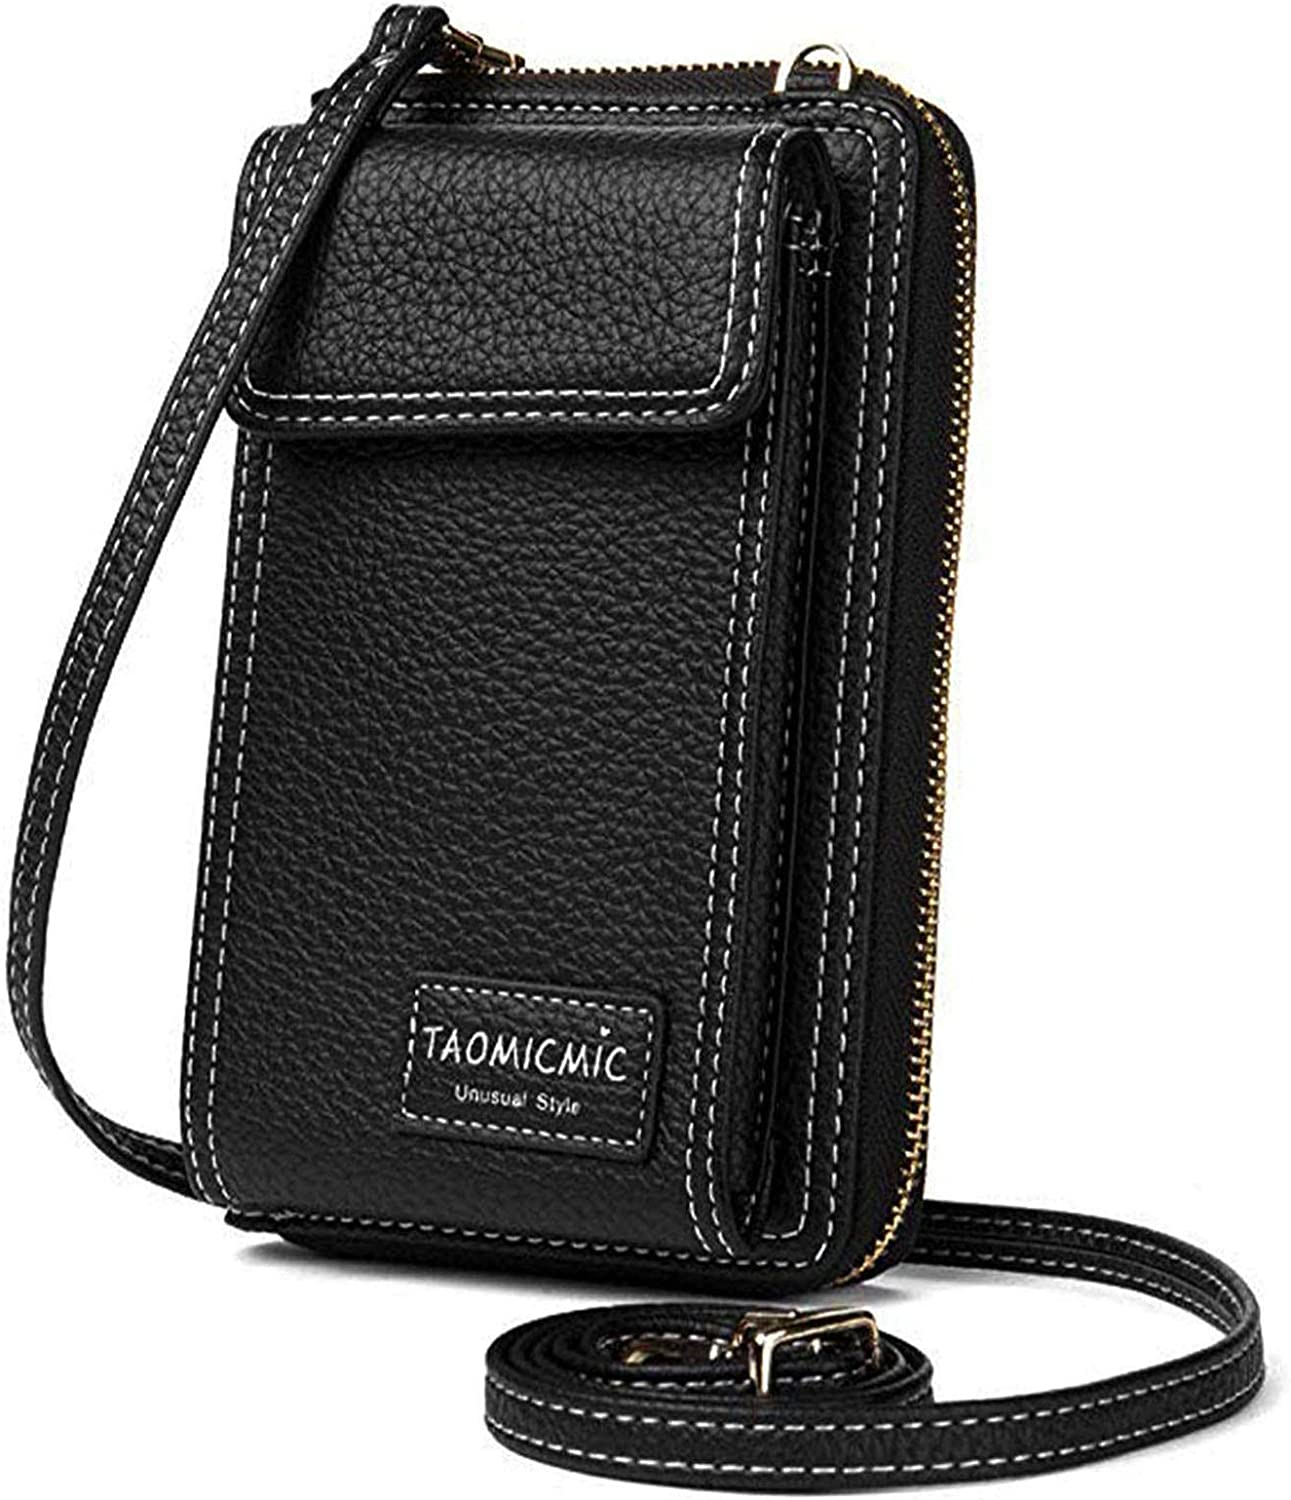 Women Crossbody Cell Phone Bag Small Shoulder Purse Leather Travel RFID Card Wallet Case Handbag Phone Pocket Baggap Clutch for iPhone 11 Se 2020 11 Pro Xr X Xs Max 8/7/6 Plus Samsung (Black)